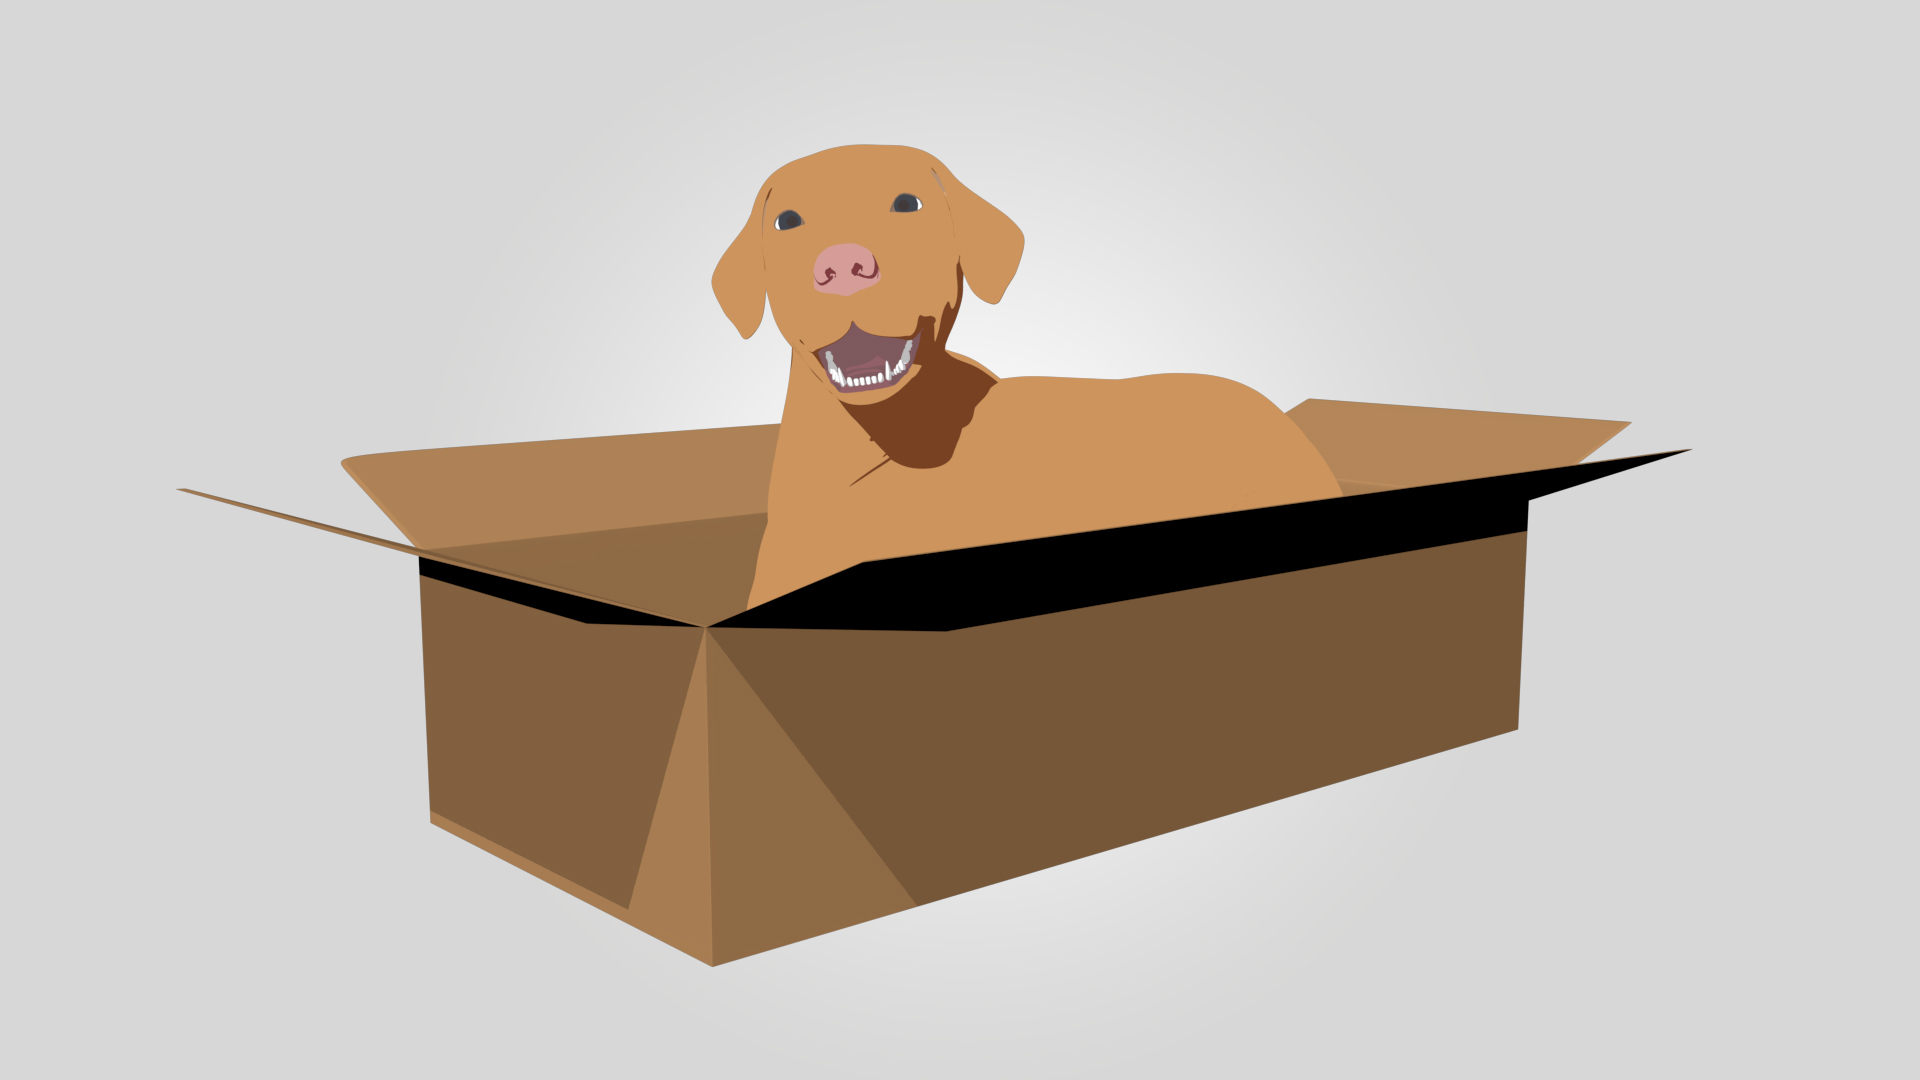 A dog inside a box